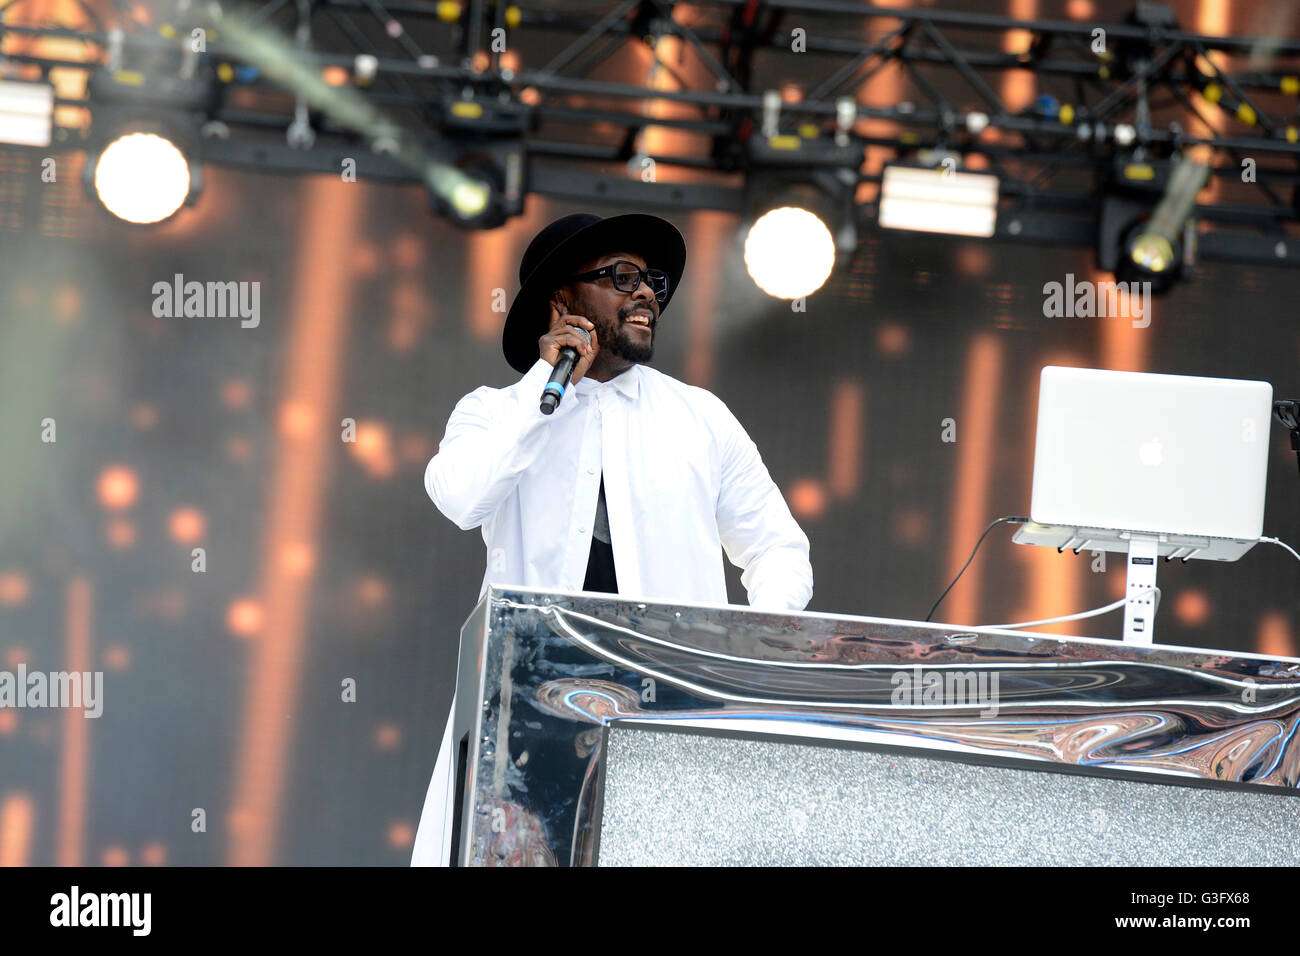 Will.I.am performing at Capital FM's Summertime Ball with Vodafone held at Wembley Stadium, London. - Stock Image